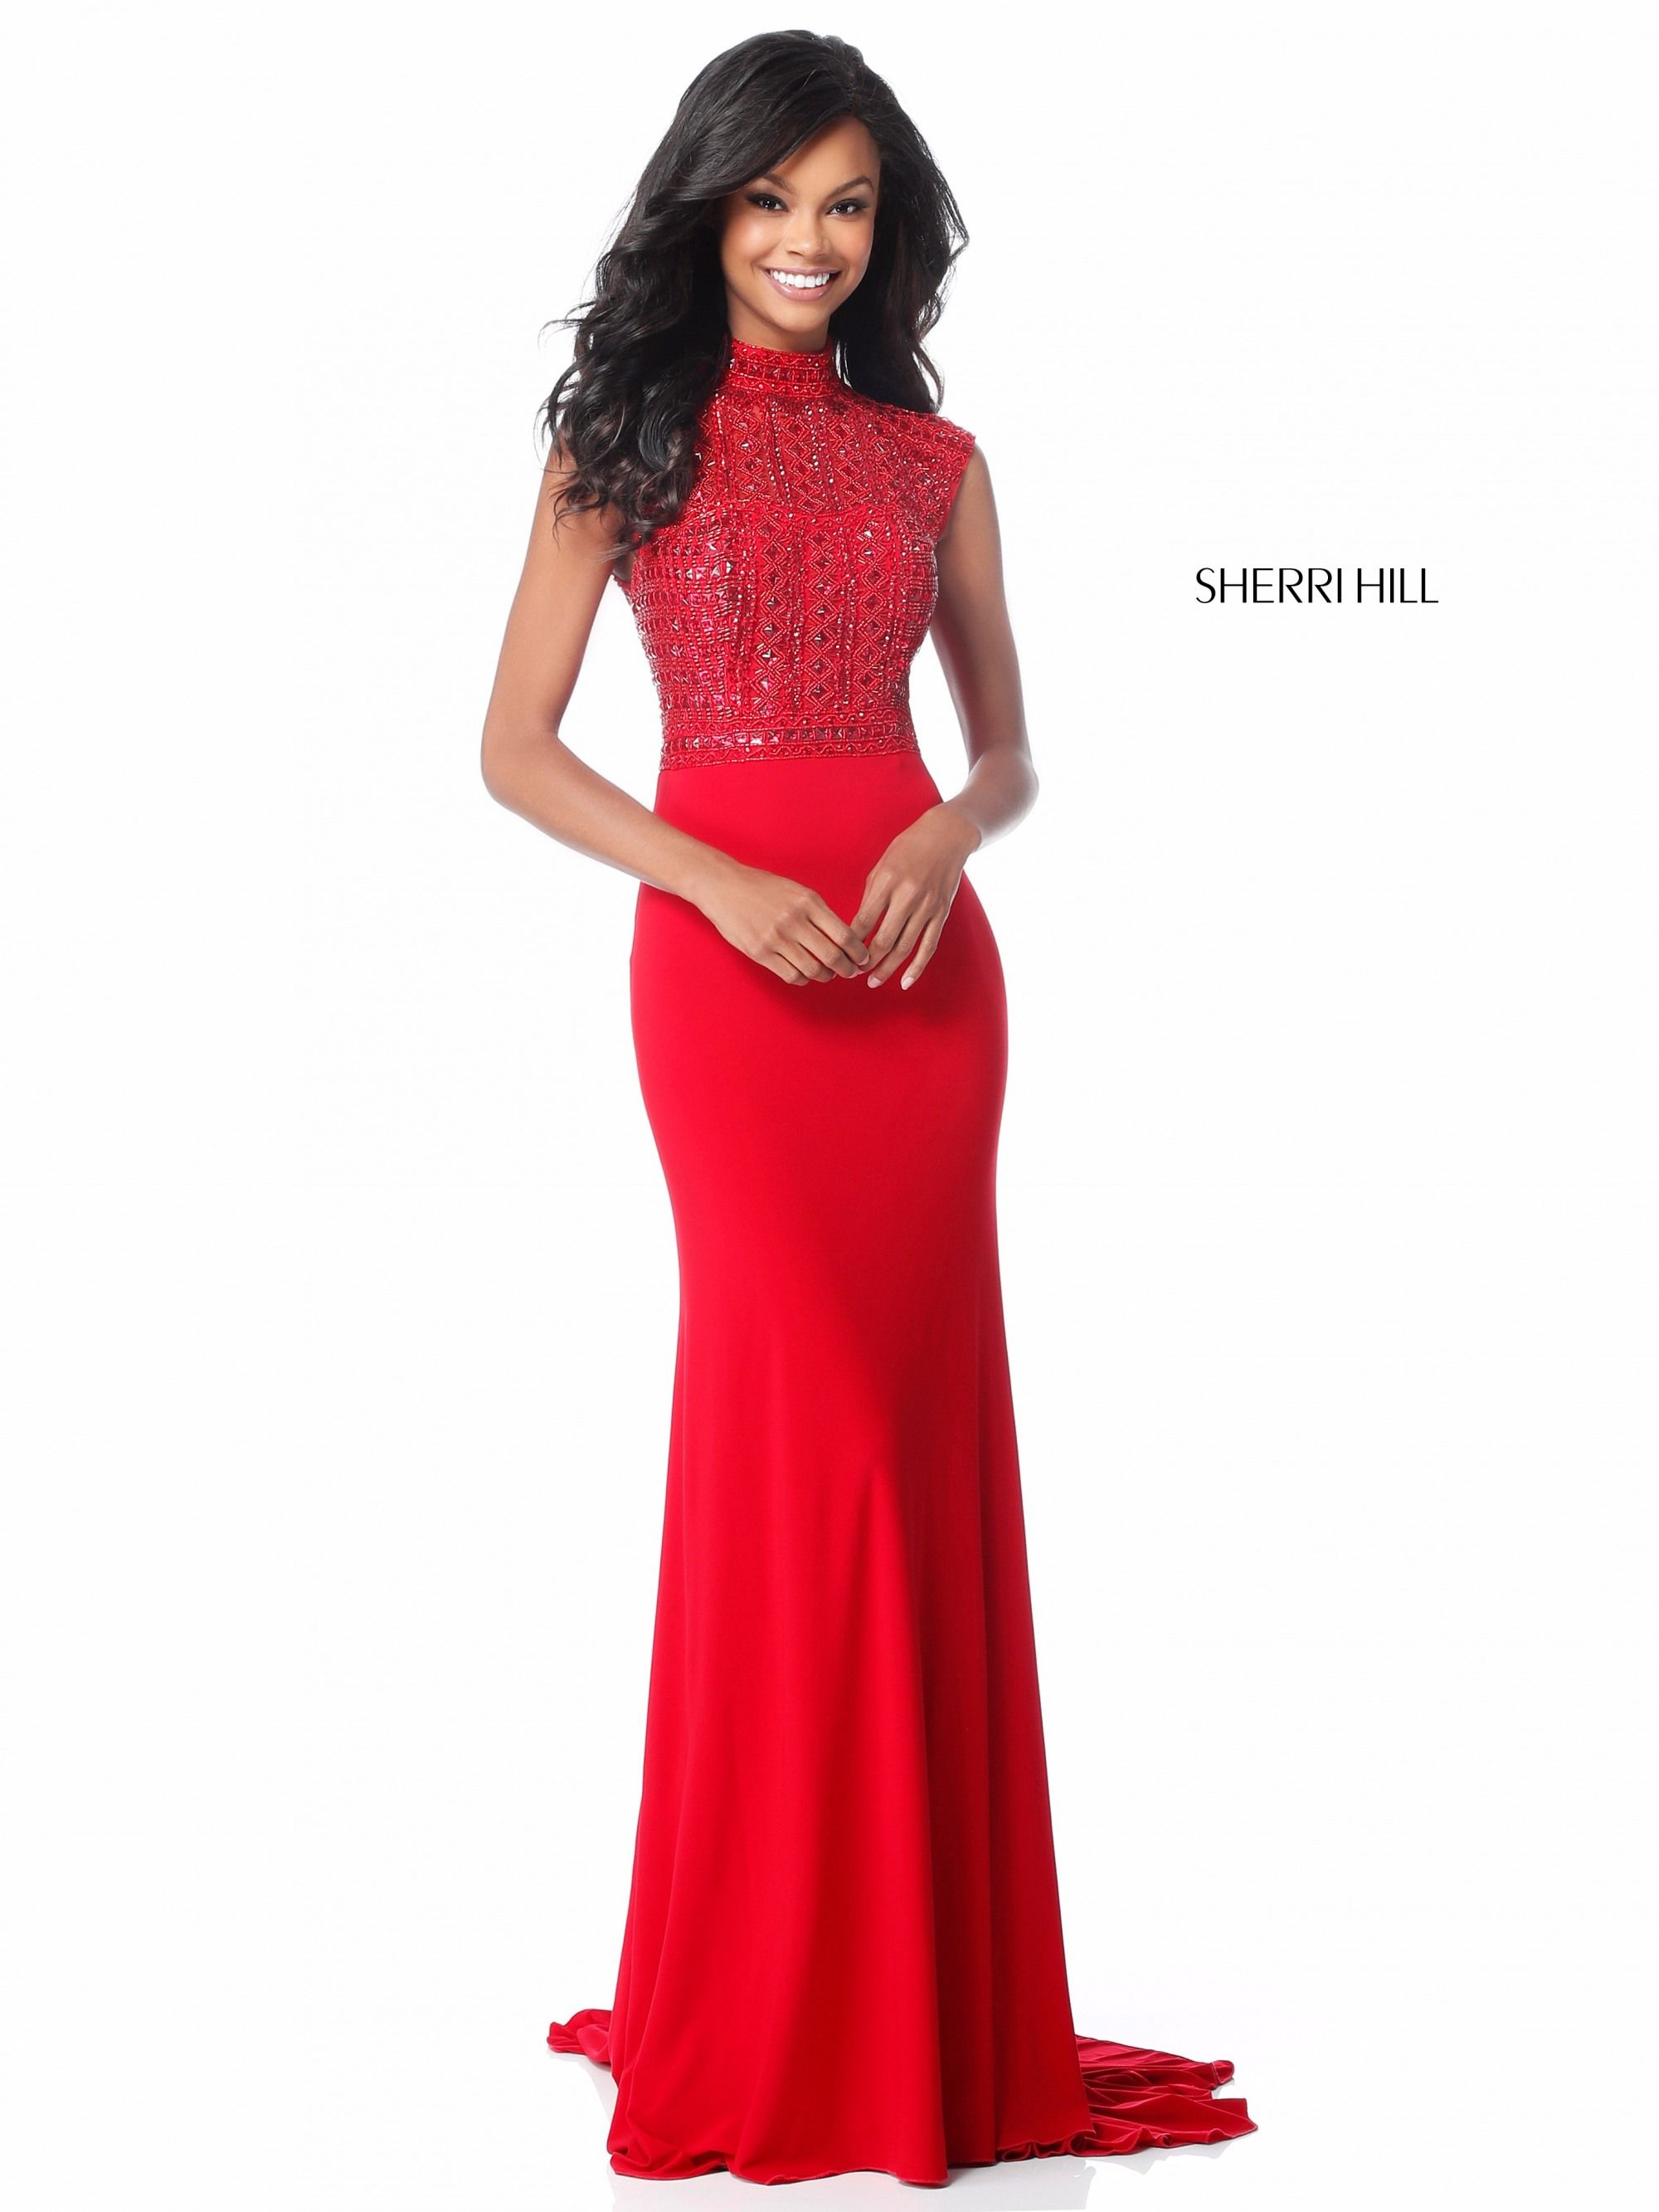 This sherri hill red formal gown features a fitted silhouette